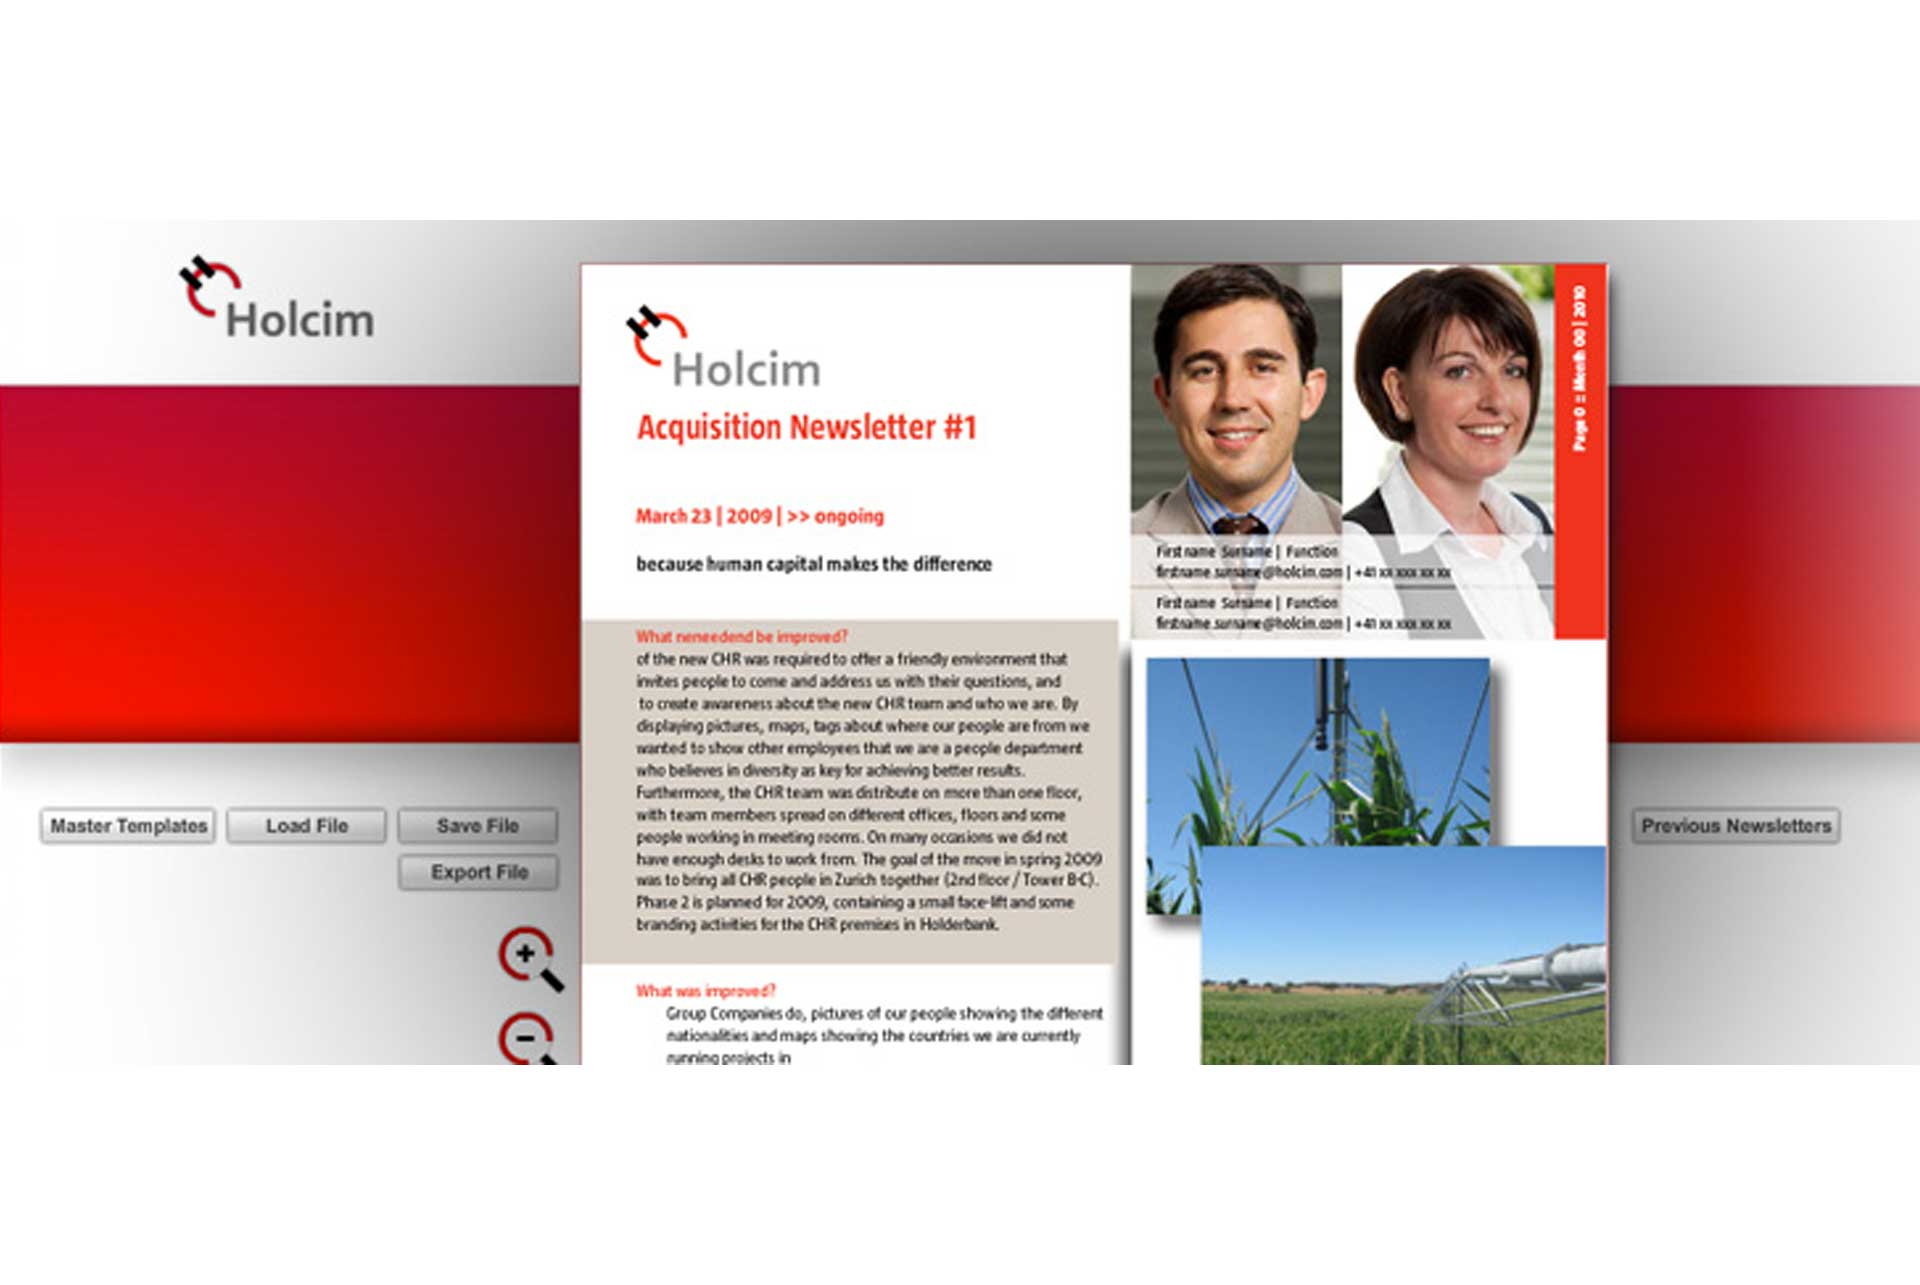 holcim_newsletter_application_01